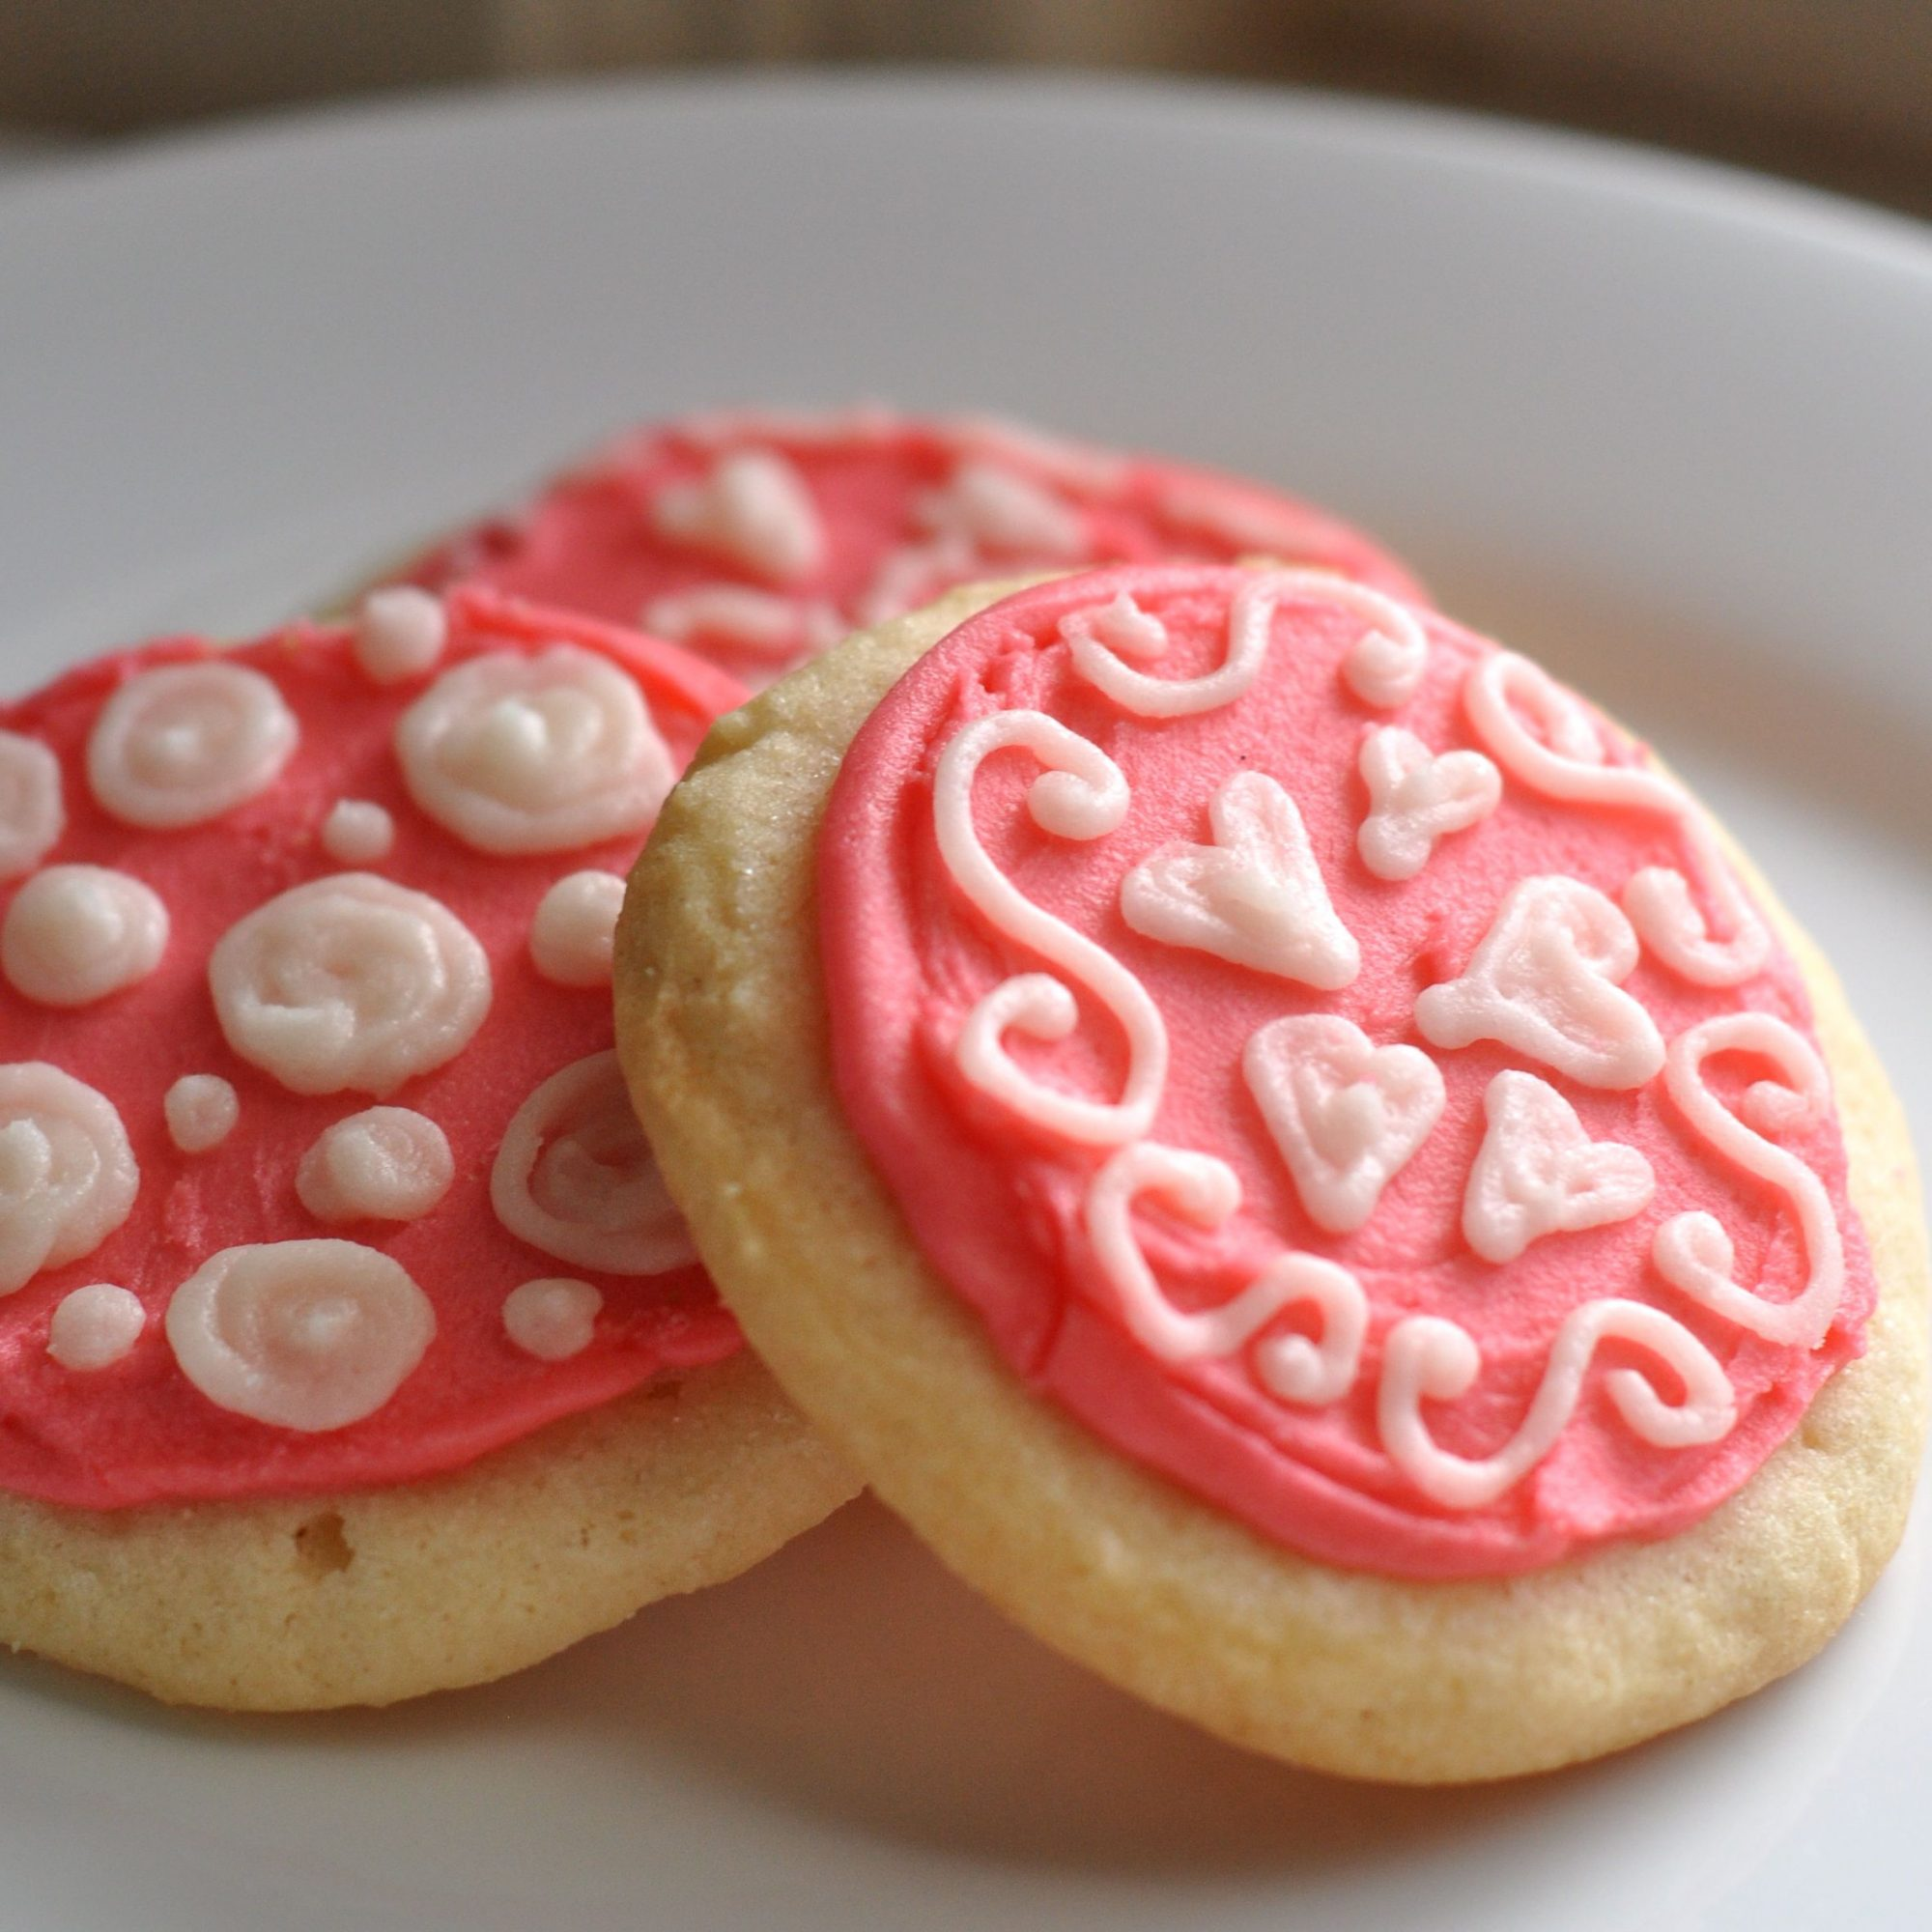 round cookies decorated for Valentine's Day with pink frosting and piped white frosting hearts and swirls